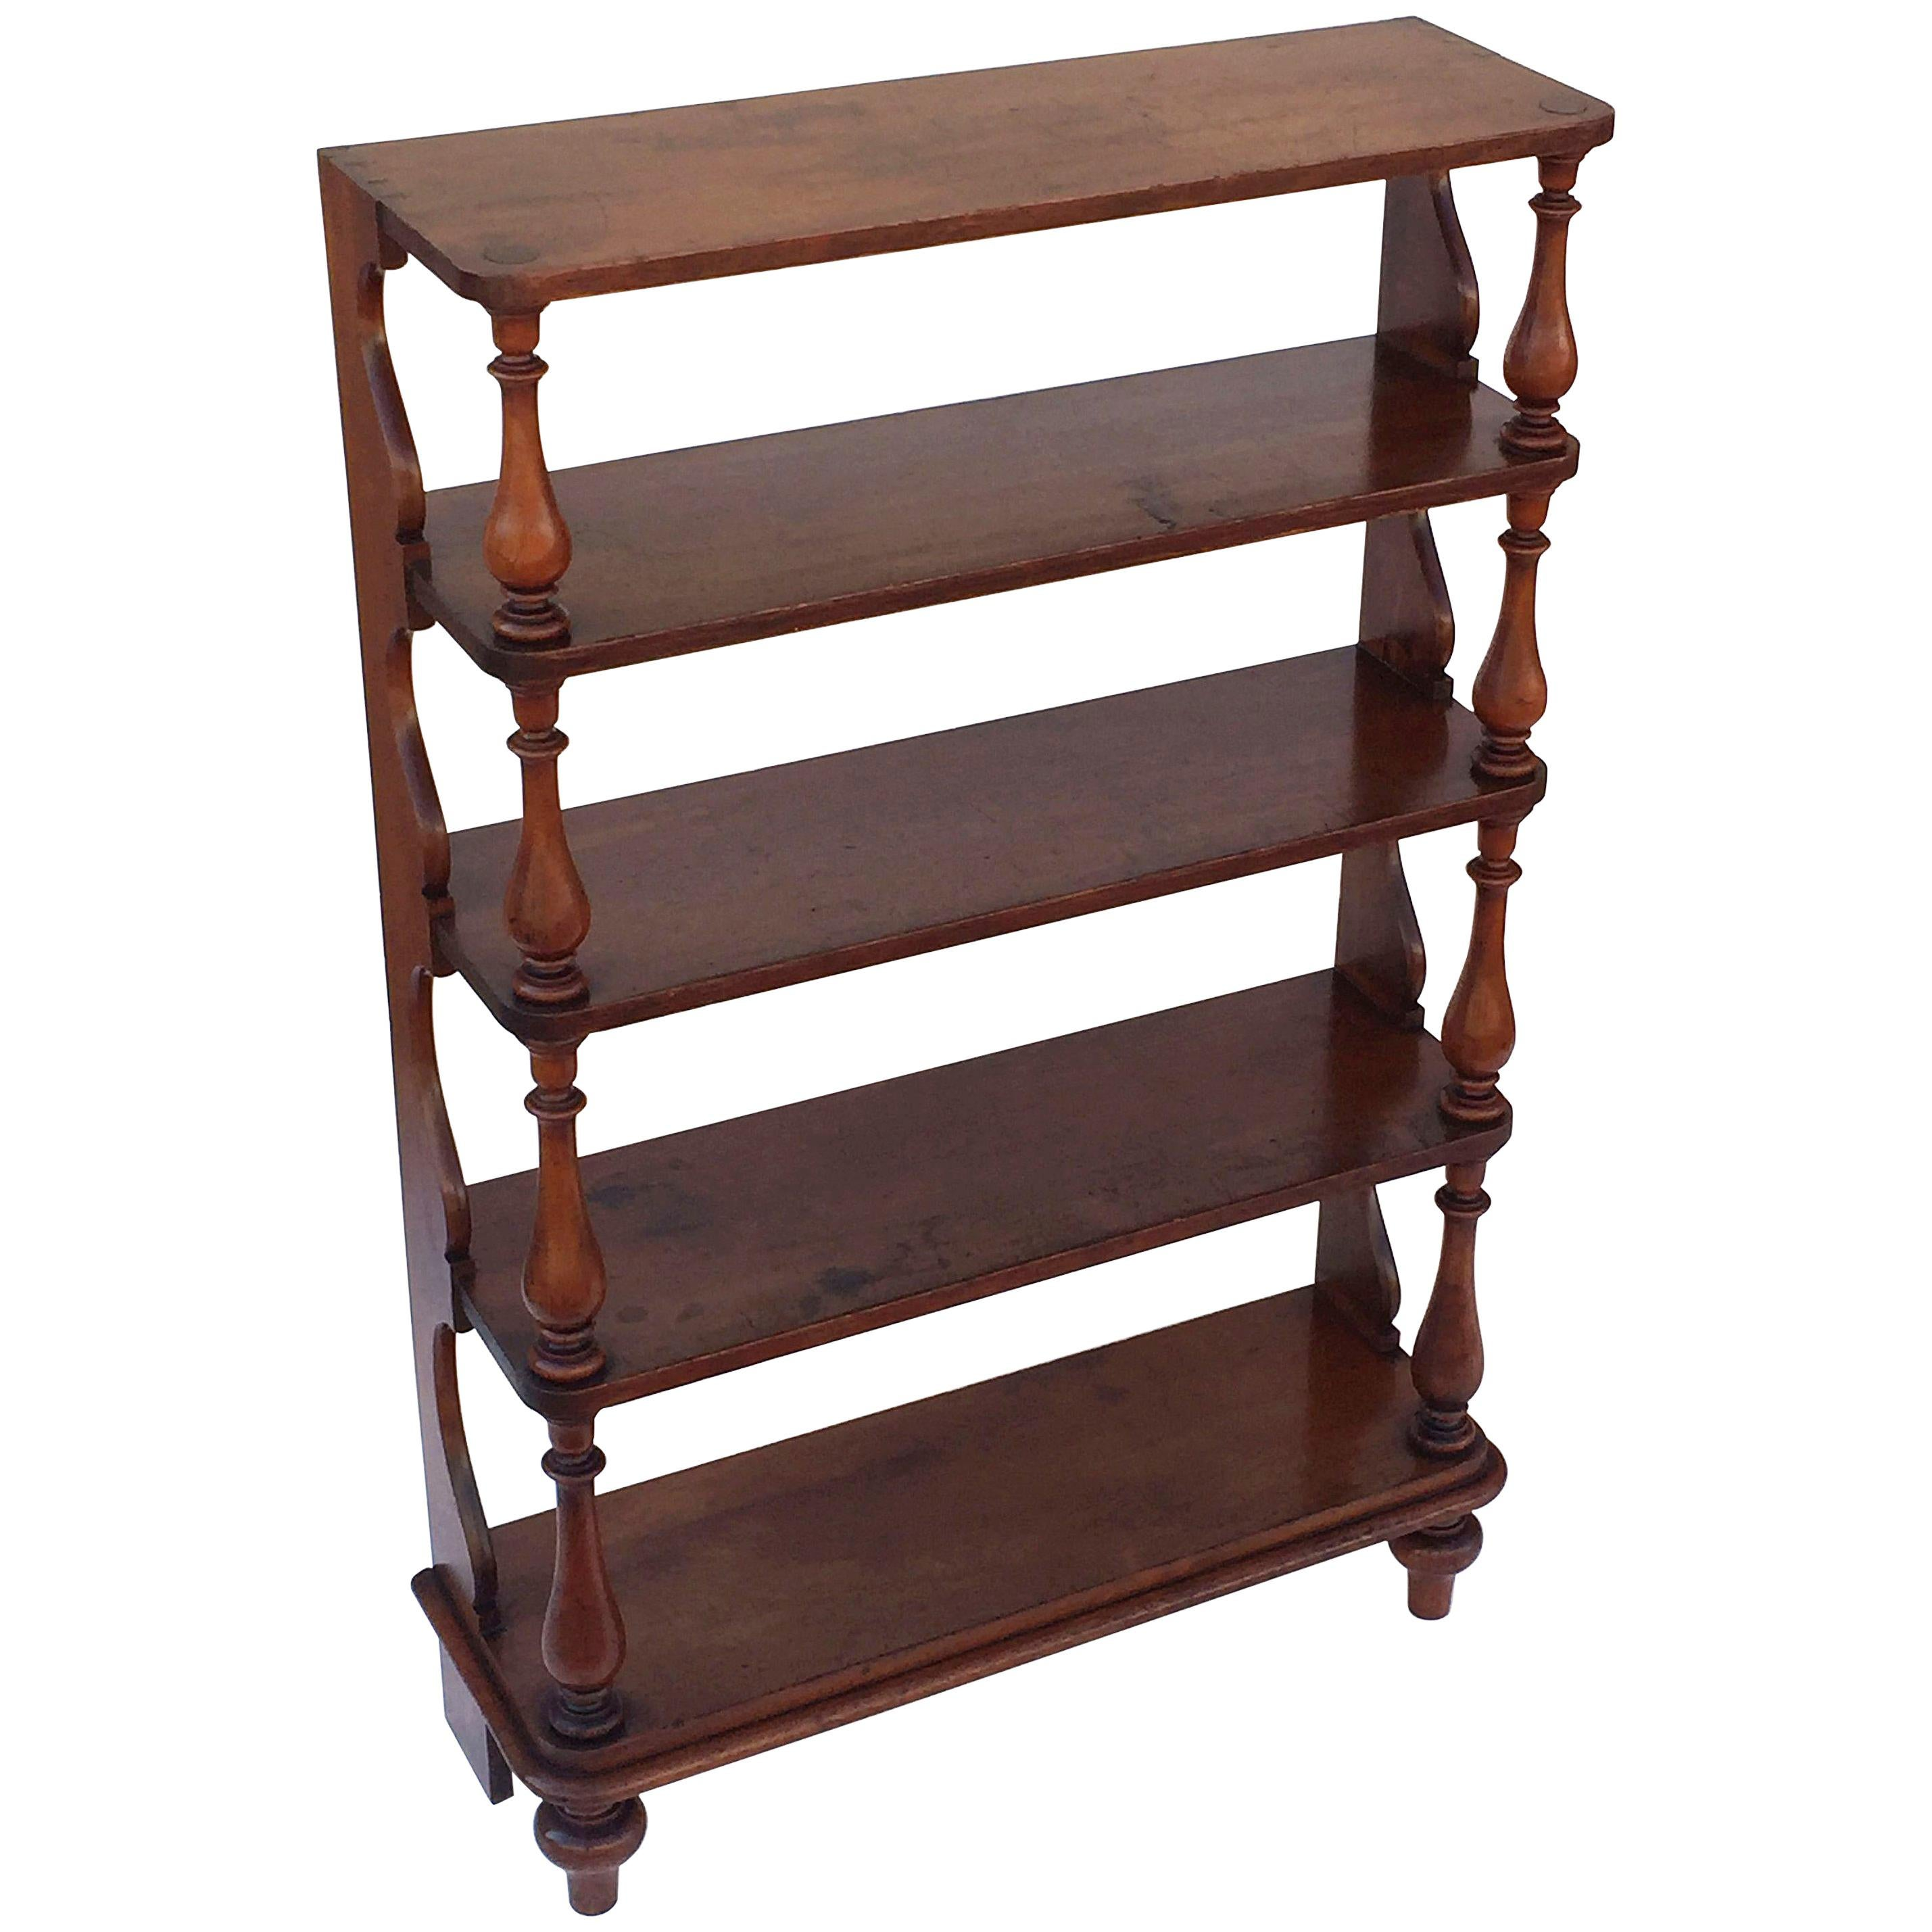 Tall English Standing Shelves Or Bookcase ã�tagã¨re Of Fruitwood At